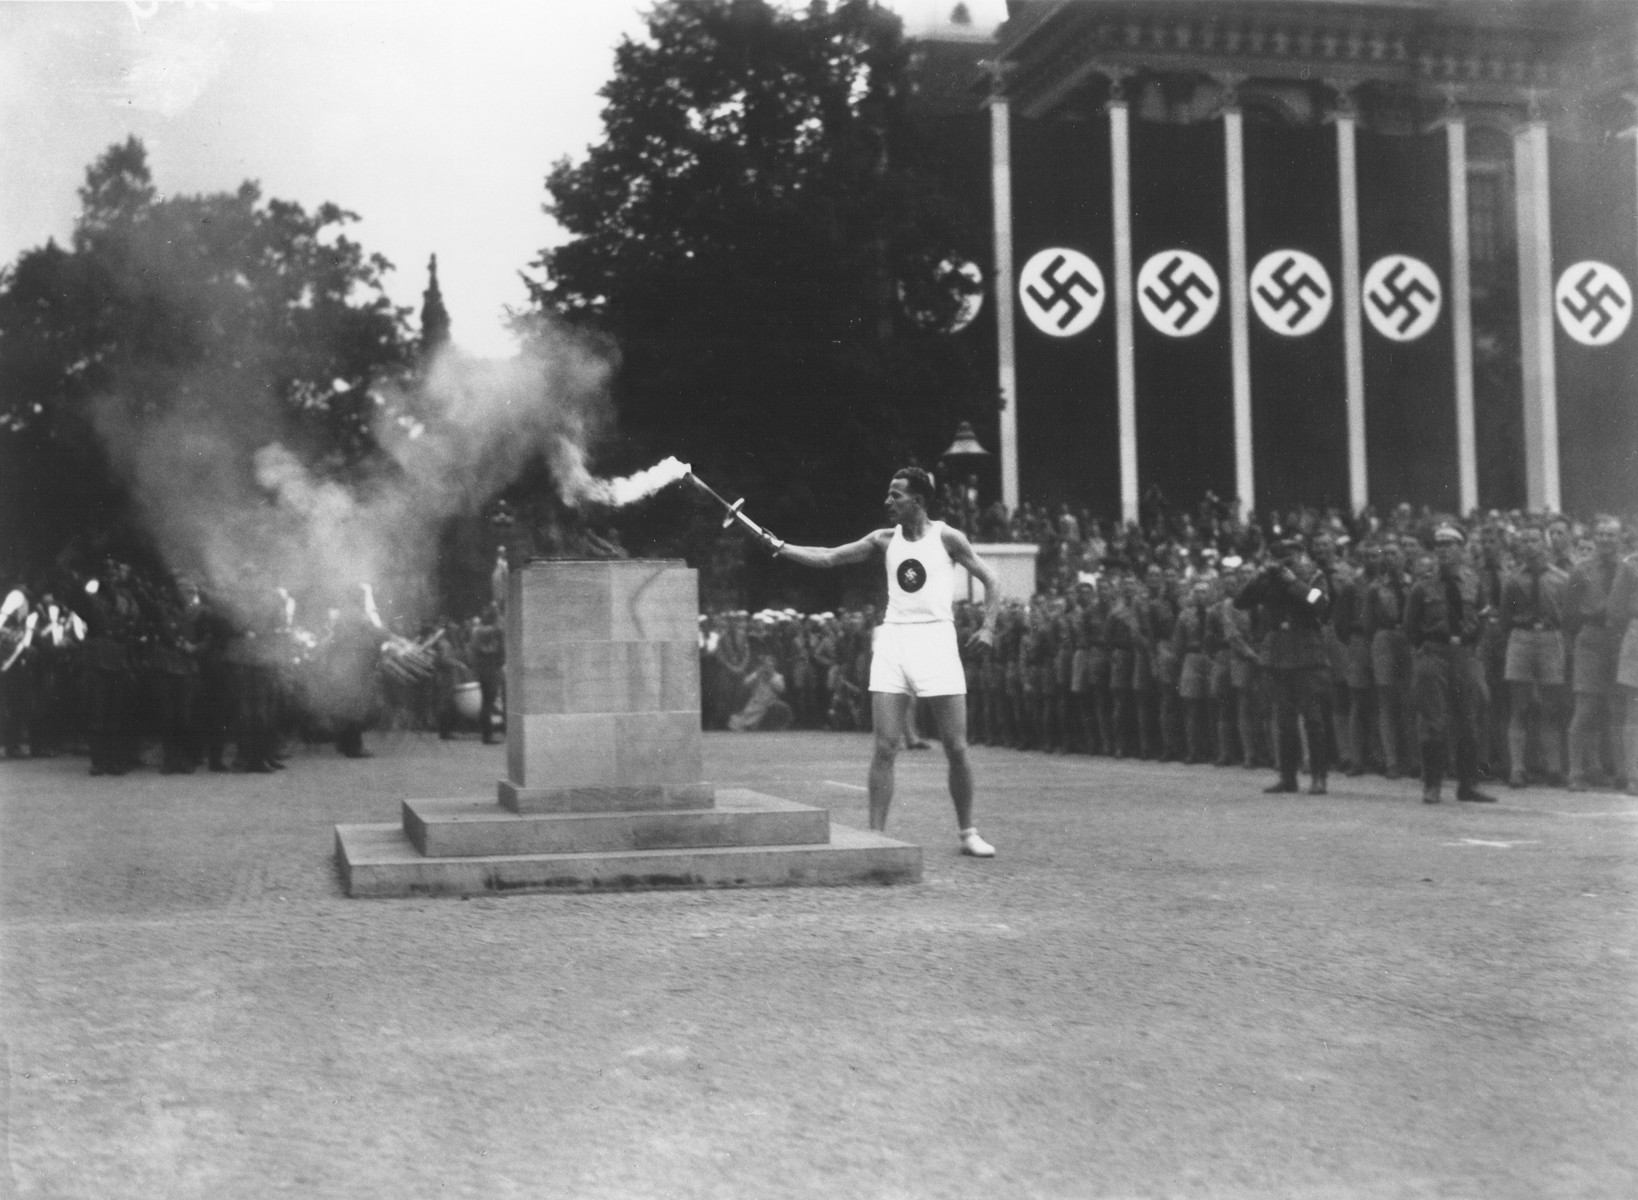 The last of the 3000 runners that carried the Olympic torch from Olympia, Greece, lights the Olympic Flame in the Lustgarten in Berlin to start the 11th Summer Olympic Games.